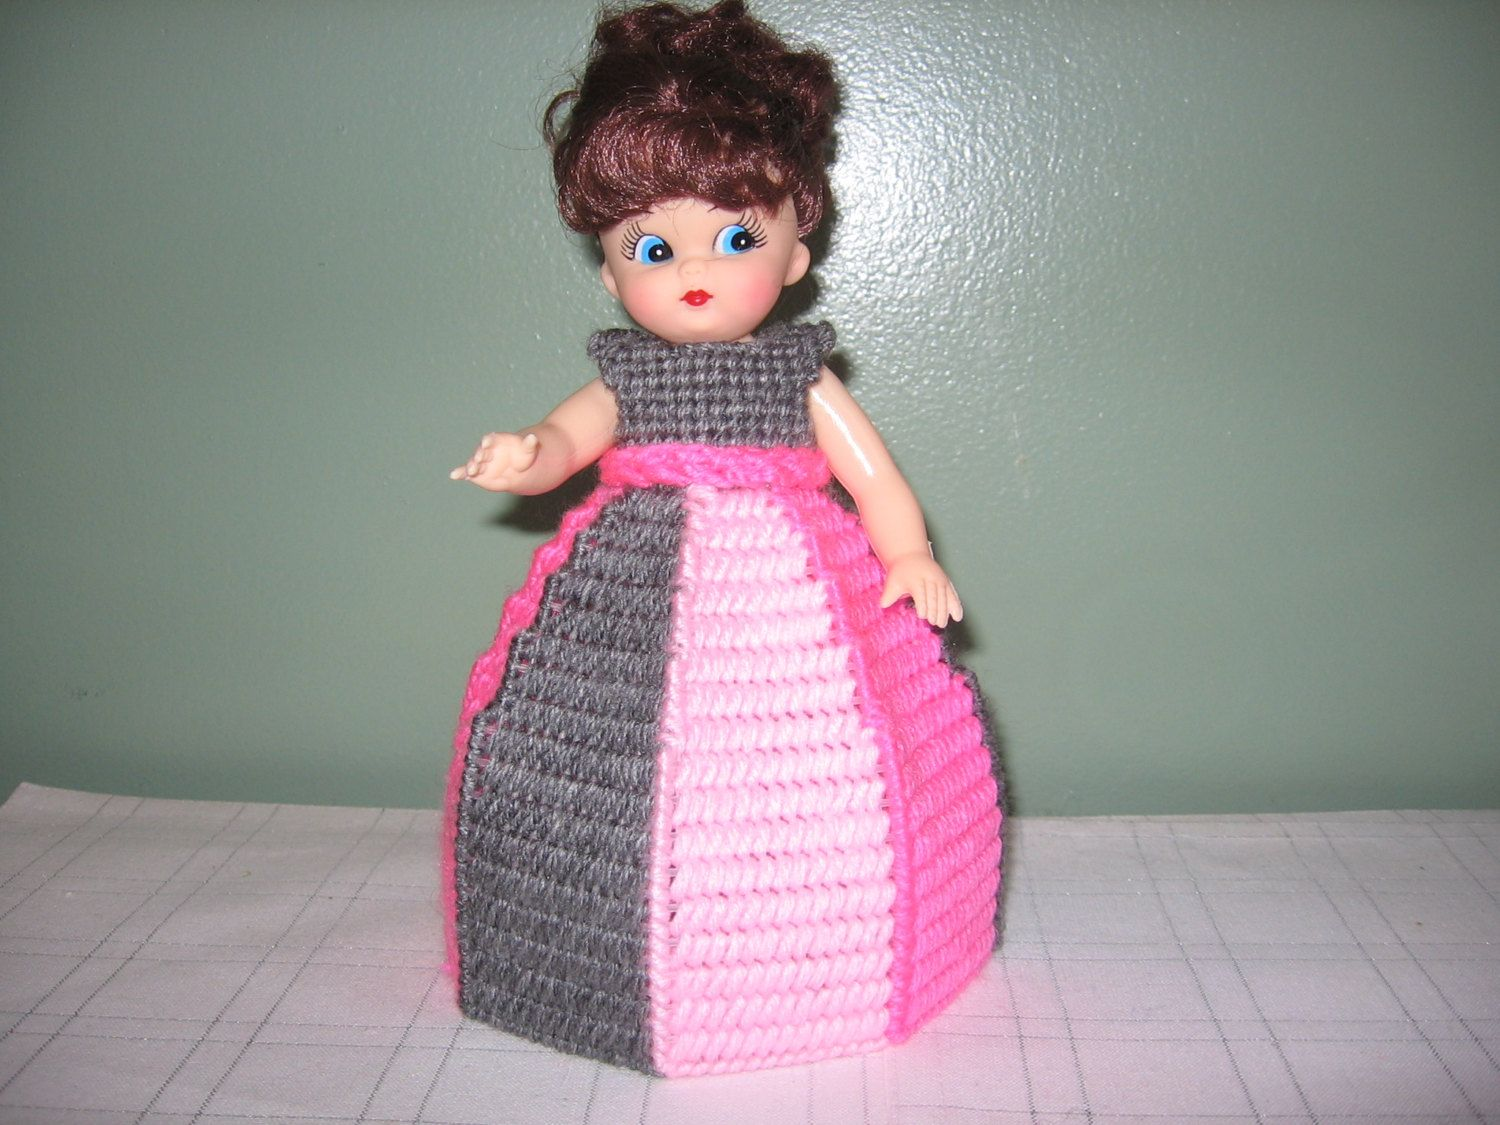 Gray/Hot Pink/Light Pink Collectible Doll - use for decoration or Air Freshner!! by CreationsbyAMJ on Etsy #airfreshnerdolls